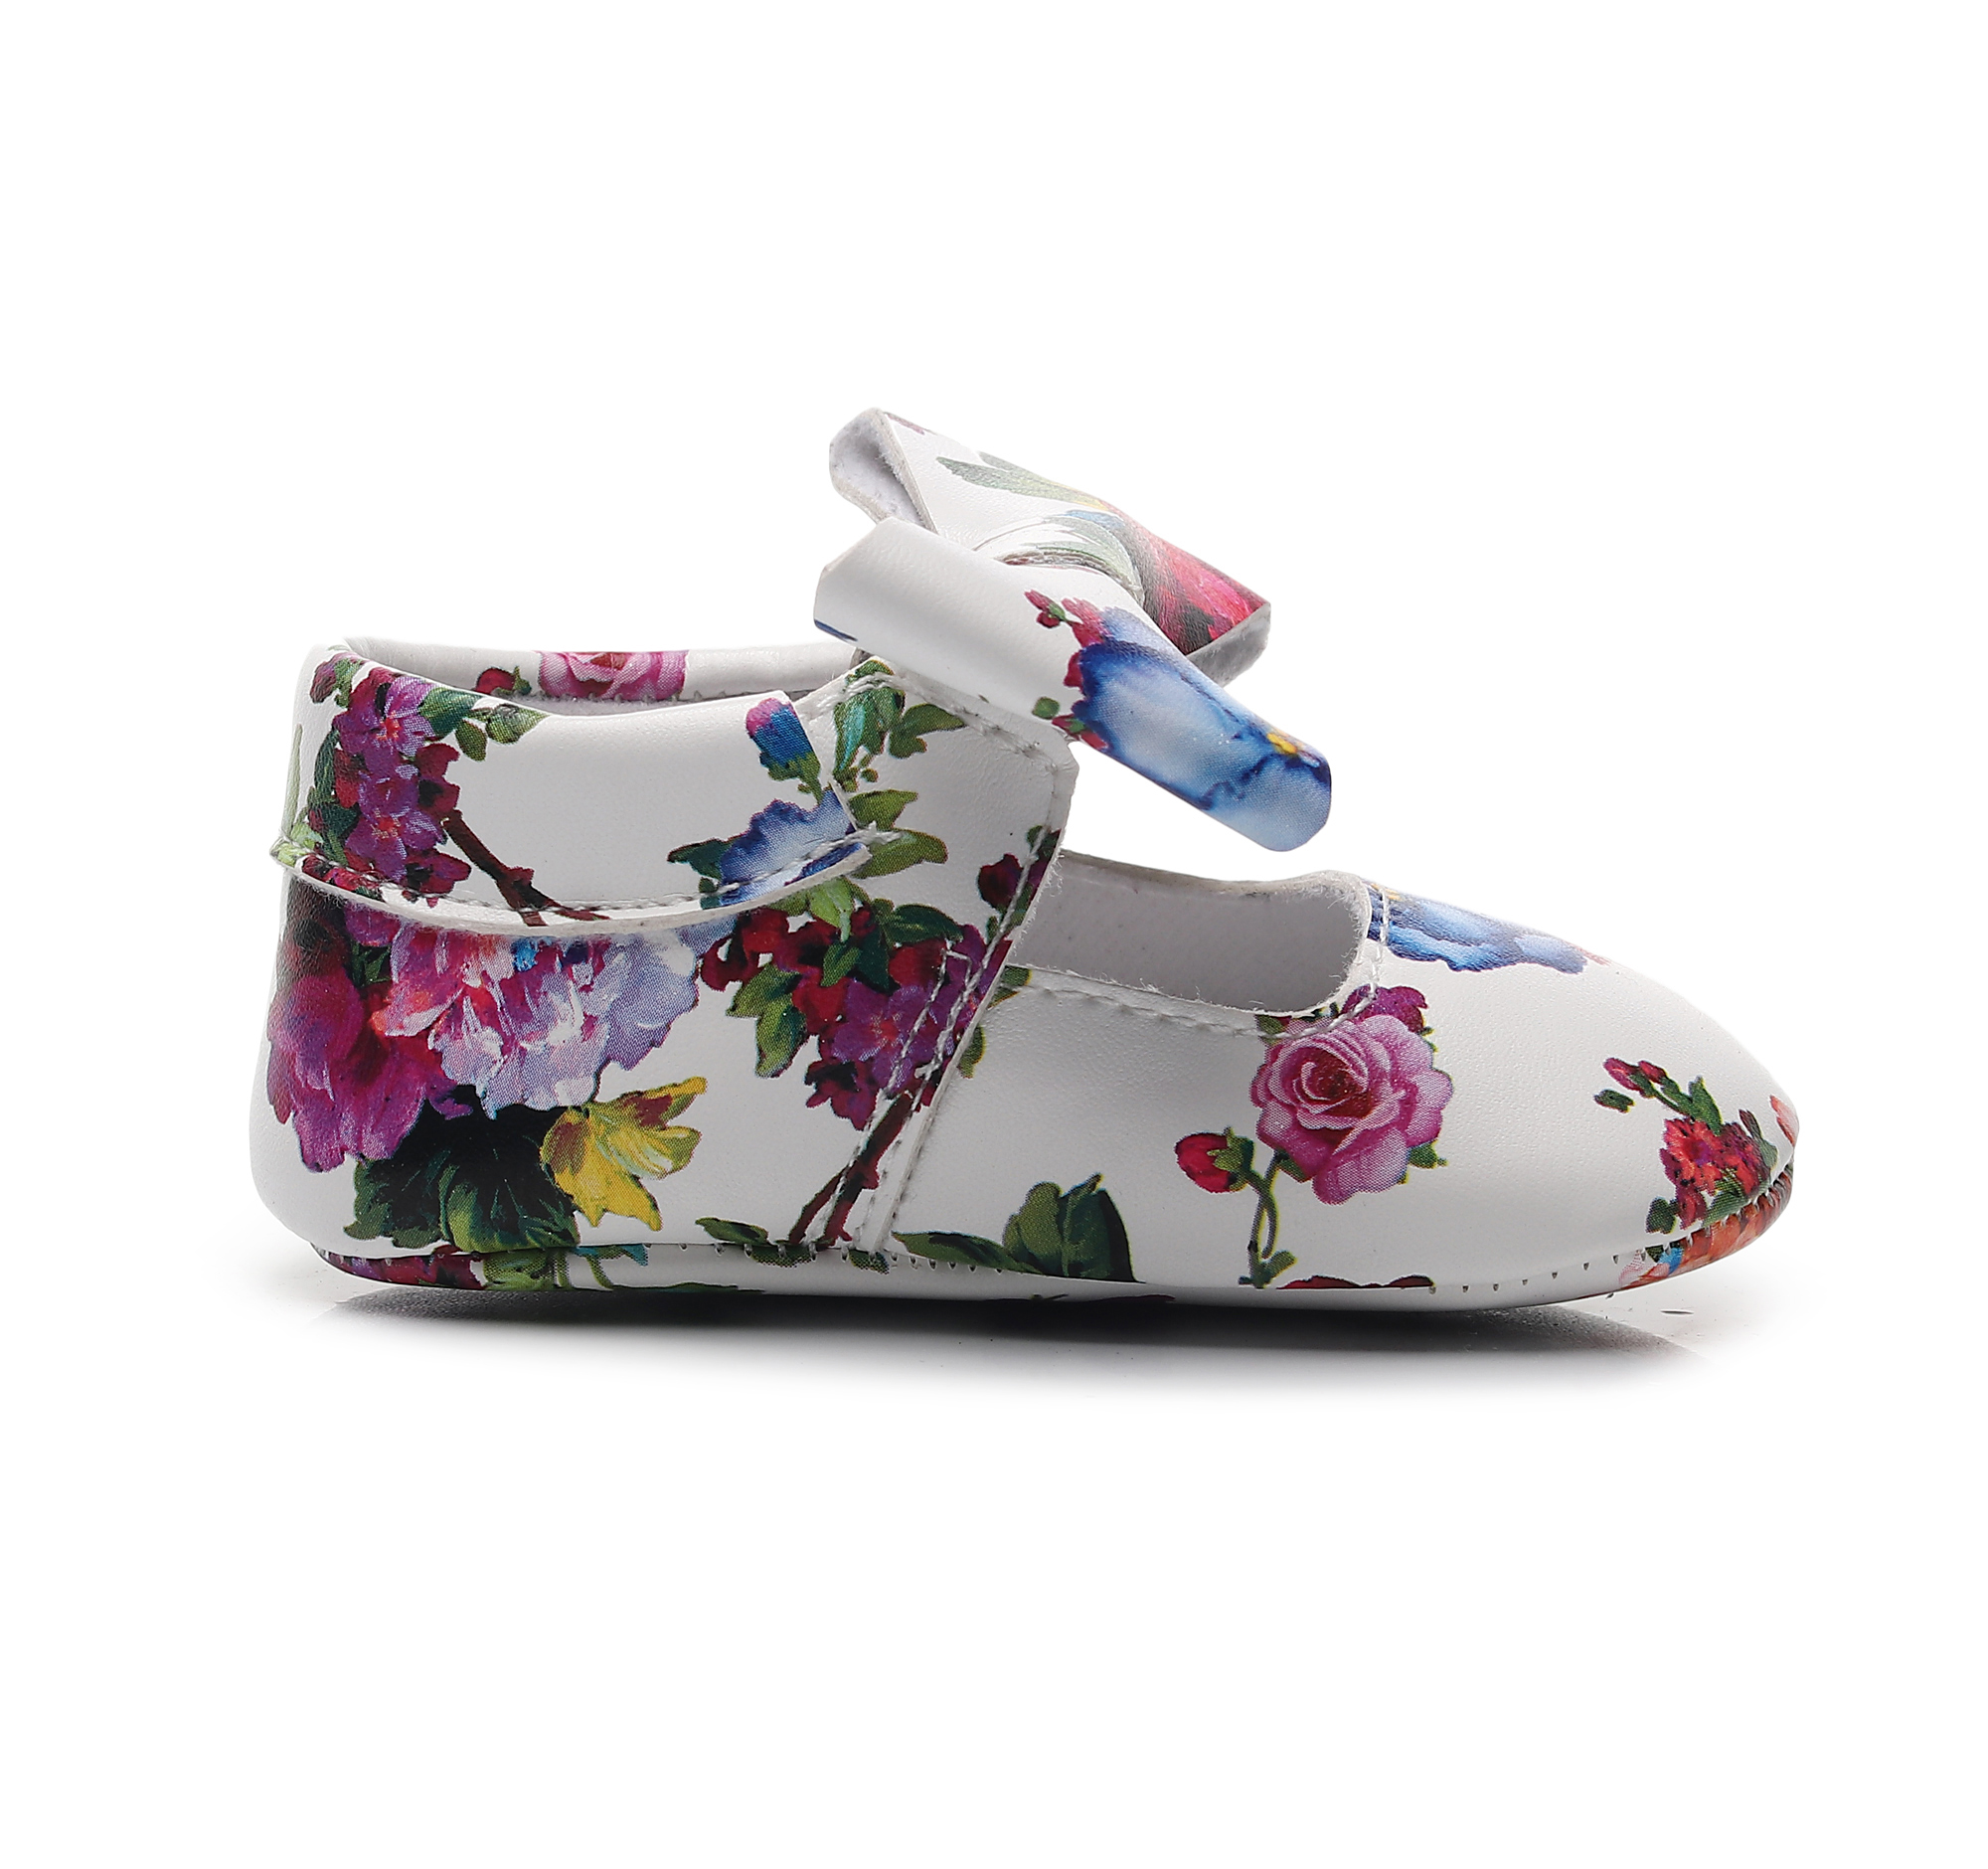 Toddler Moccasins Floral Beautiful Princess Shoes Bow PU Leather Baby Newborn Shoes Footwear For Baby Girls